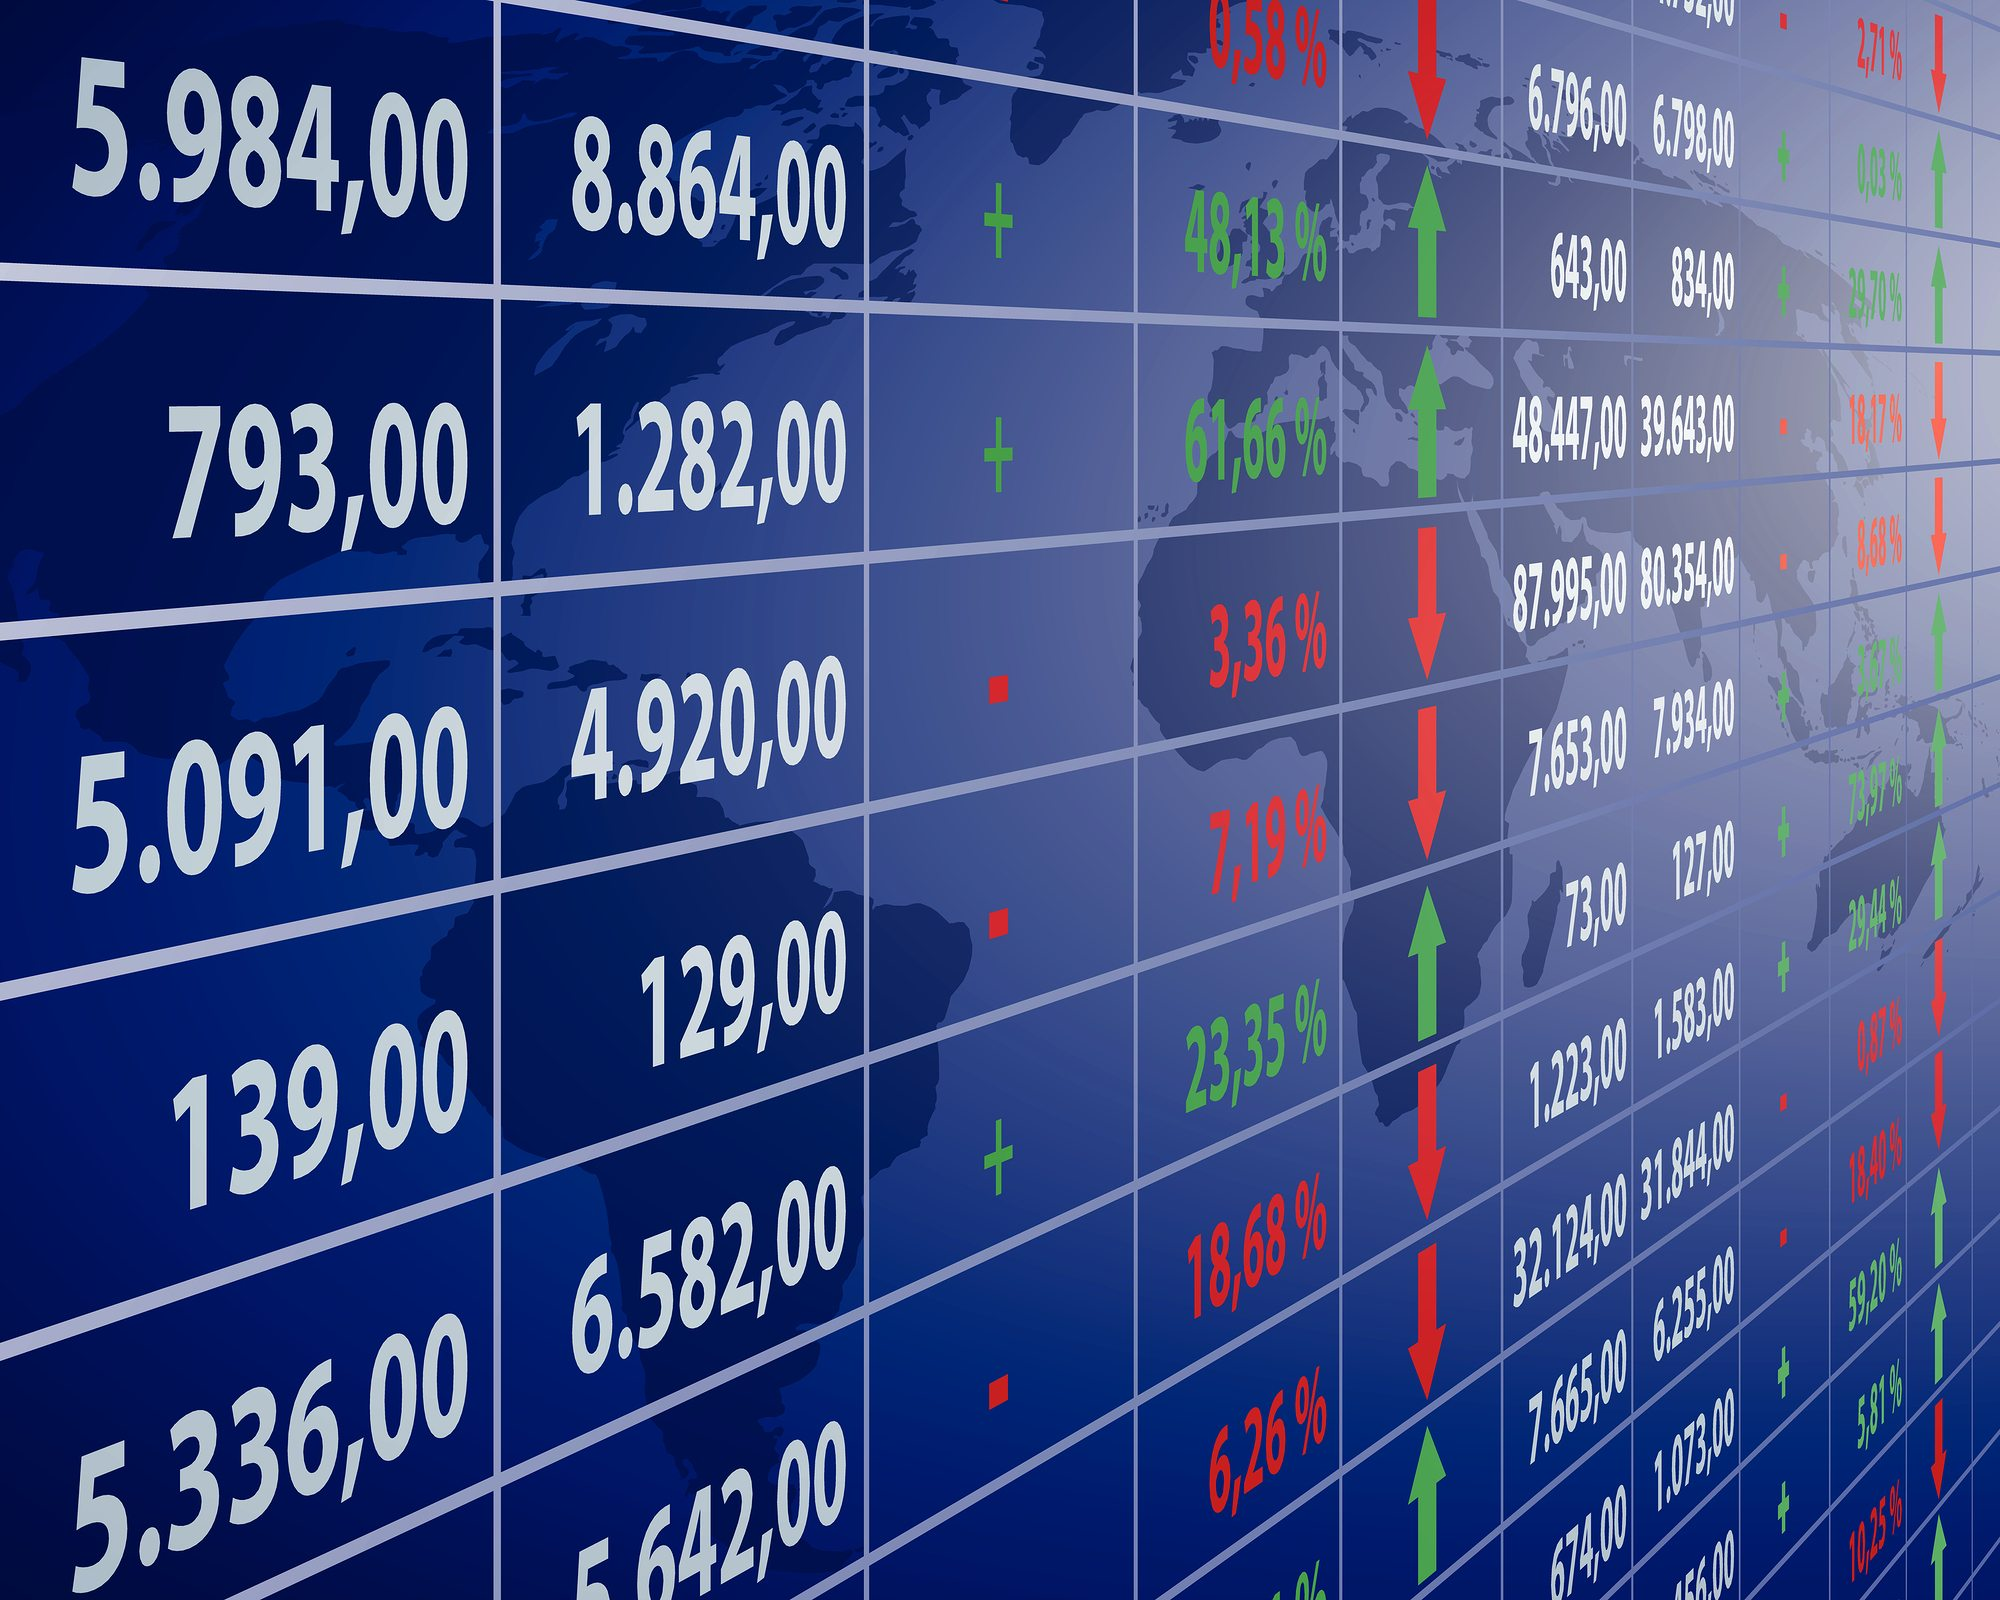 This Morning's Technical Outlook on REIT Stocks — RAIT Financial Trust, Redwood Trust, Seritage Growth Properties, and Spirit Realty Capital